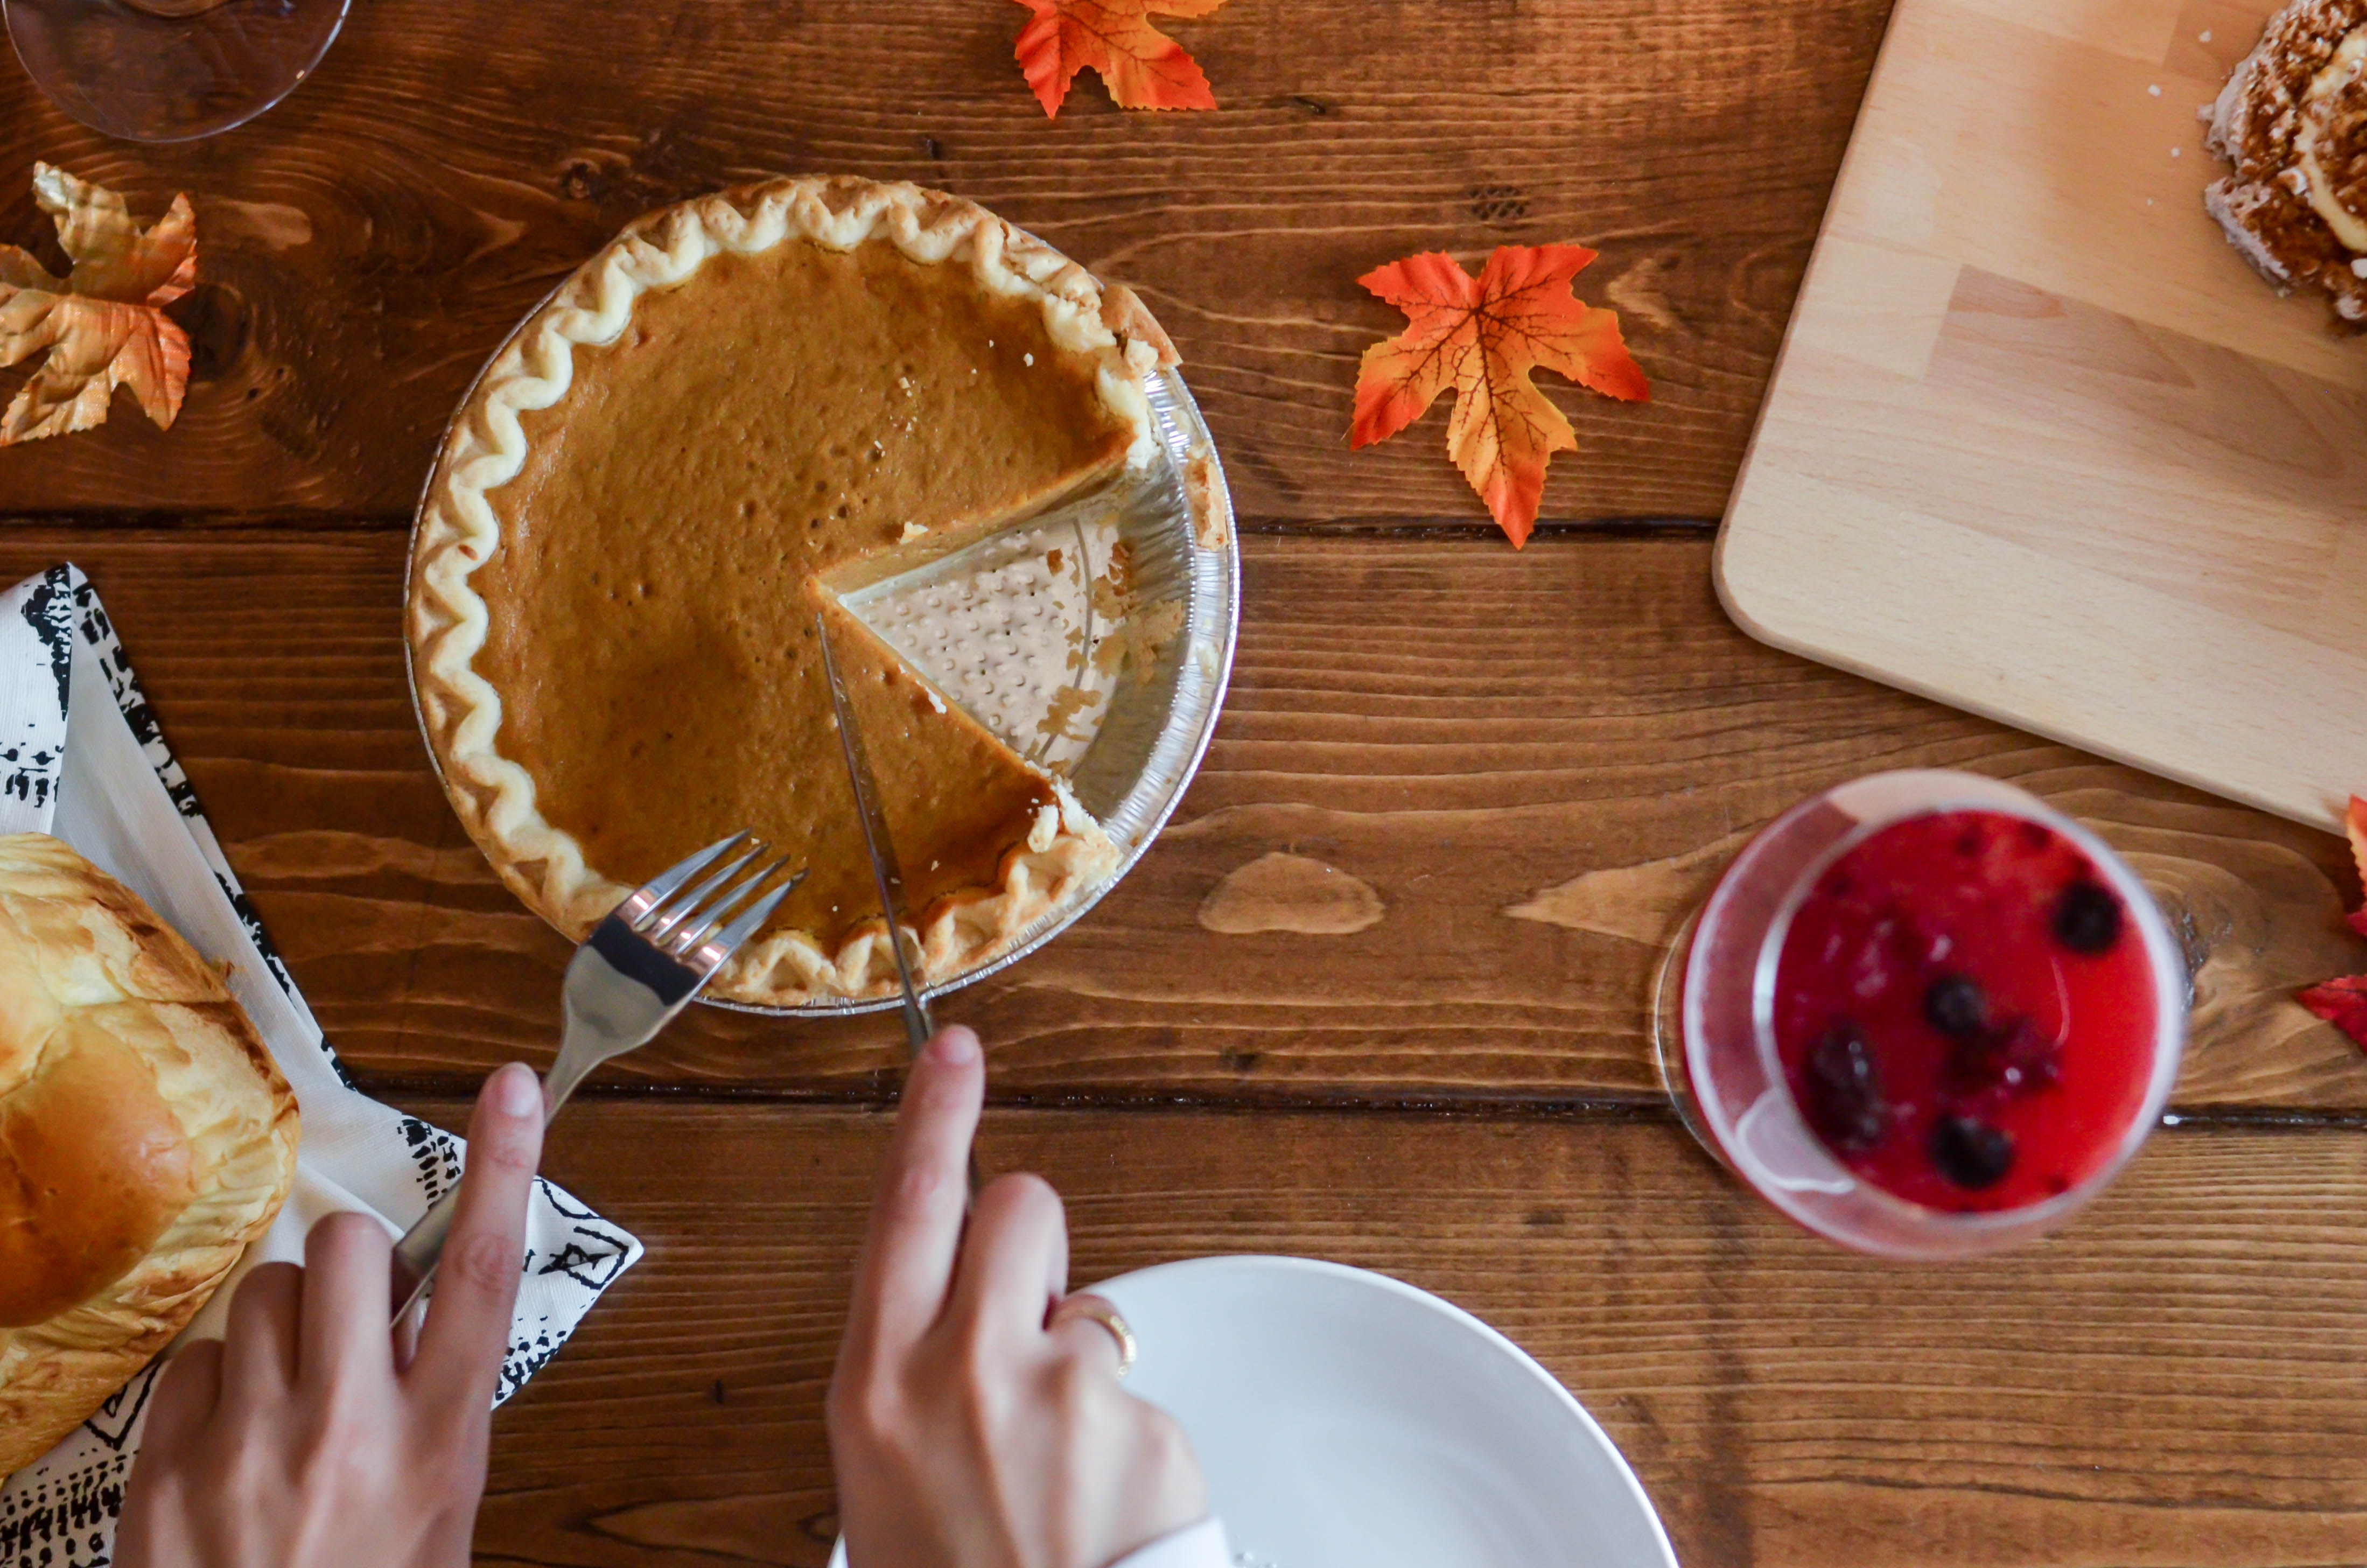 Person holding knife and fork cutting slice of pie on brown wooden table photo